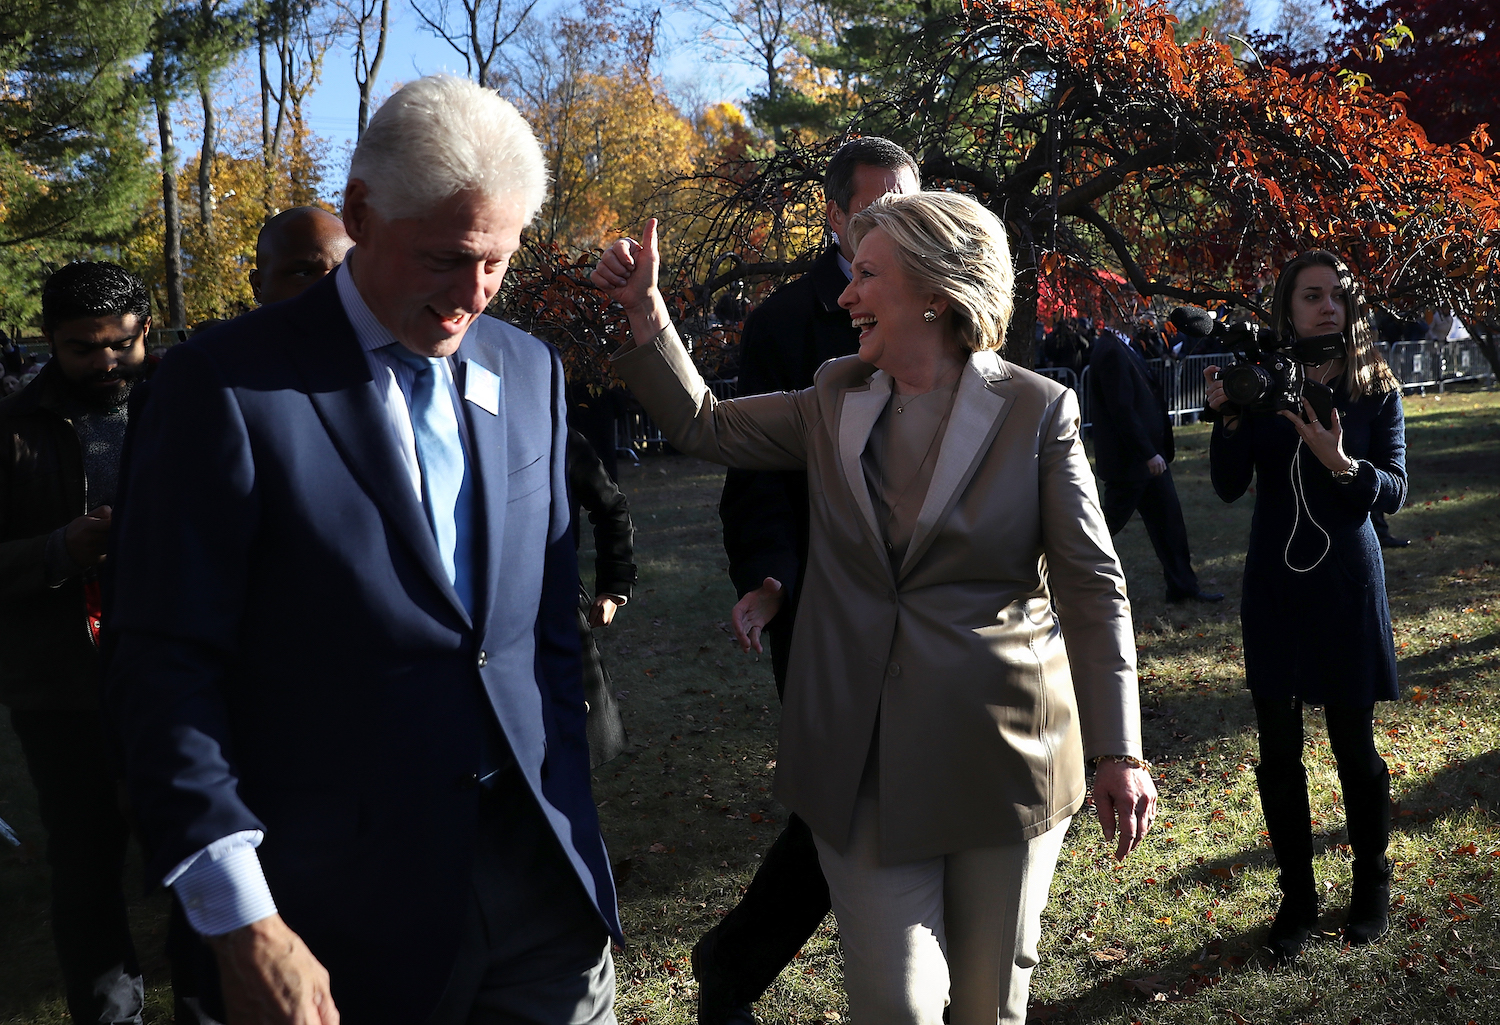 Democratic Presidential Candidate Hillary Clinton Casts Her Vote On Election Day